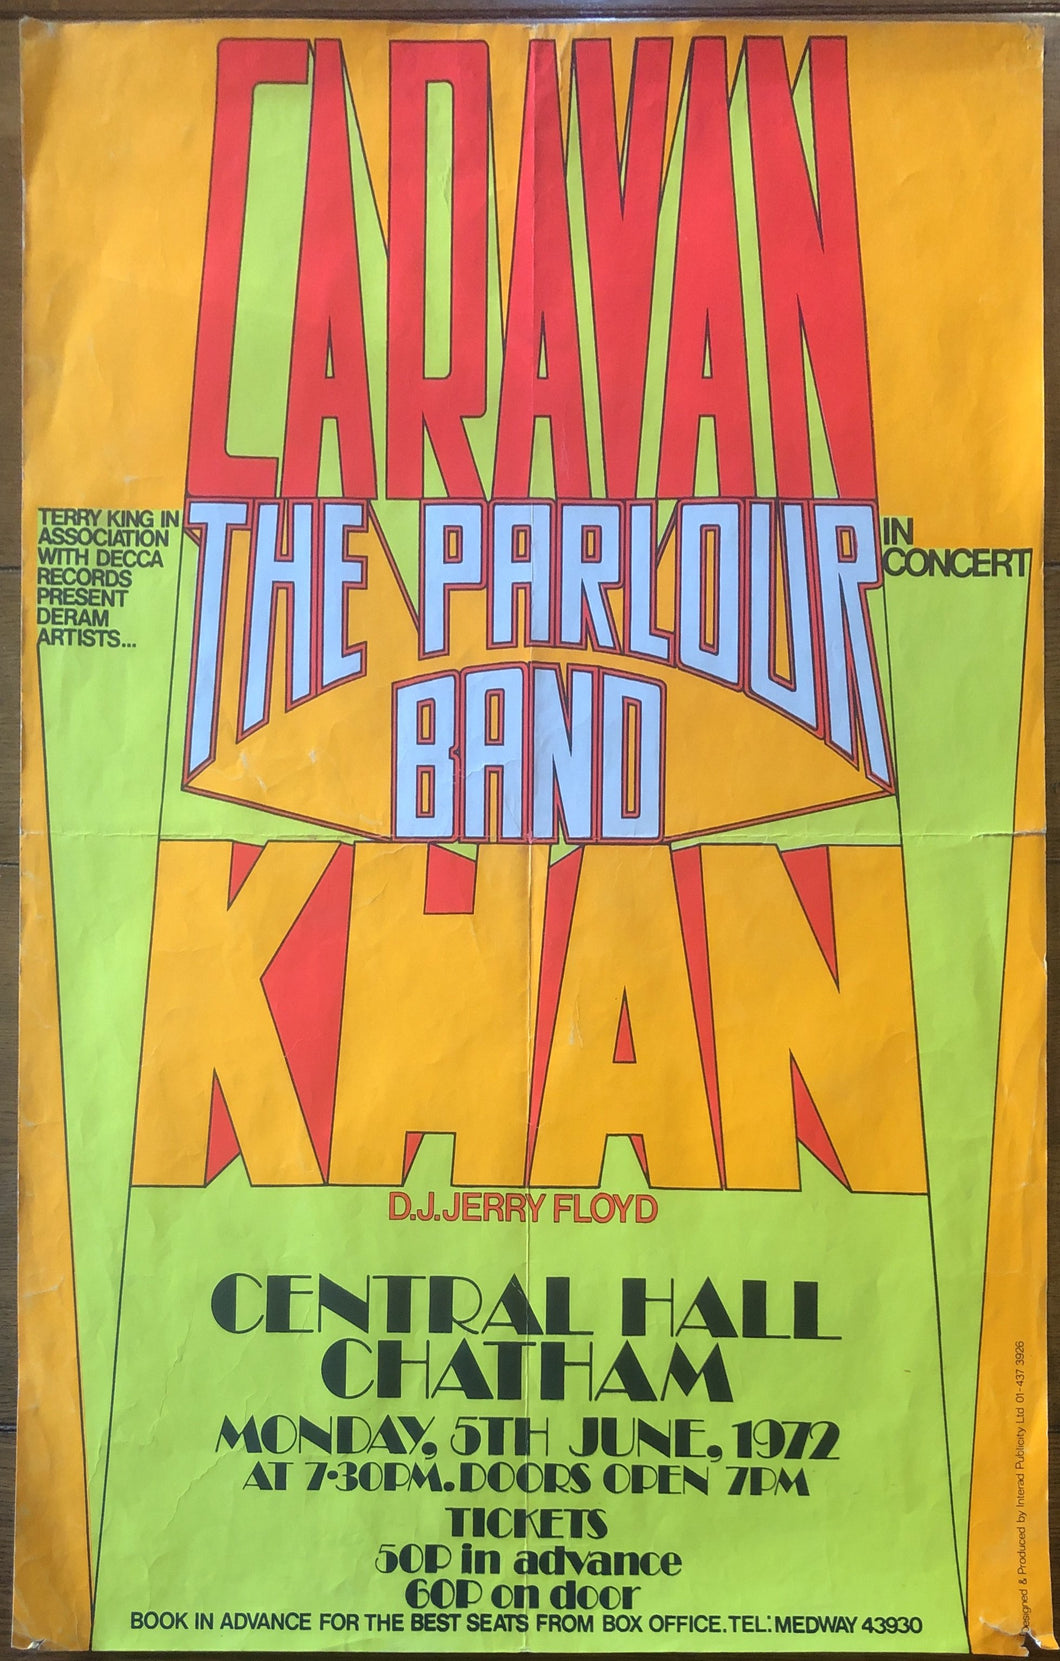 Caravan Khan Original Concert Tour Gig Poster Central Hall Chatham 5th June 1972